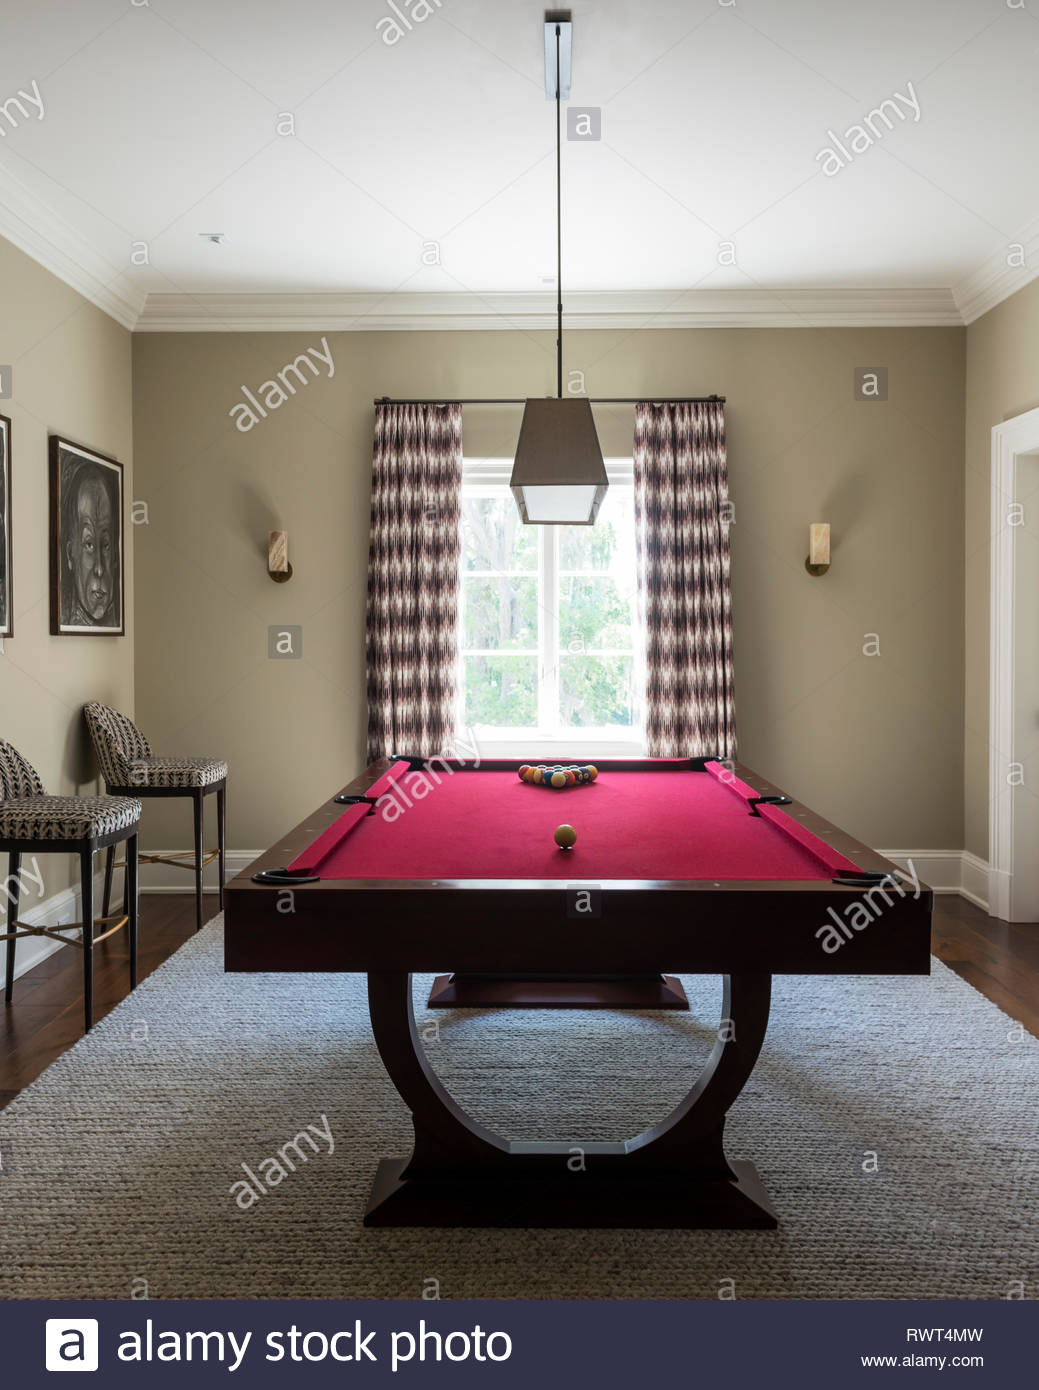 Billiard Room Stock Photos & Billiard Room Stock Images - Alamy on country home office design, country home garden design, country home living room design, country home kitchen design,